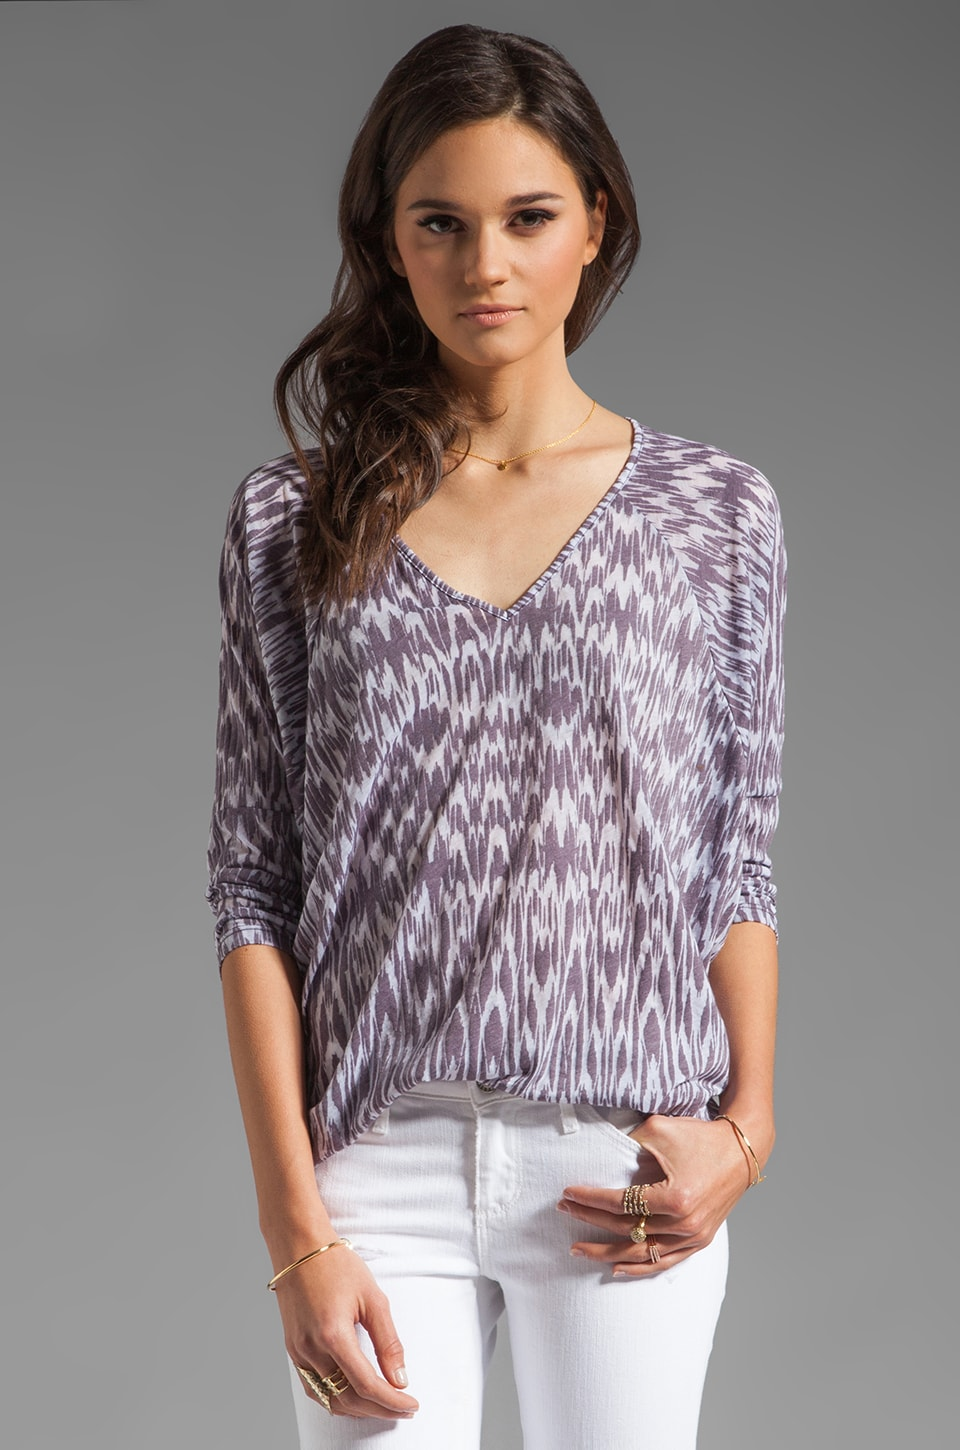 Velvet by Graham & Spencer Ikat Burnout Georgina Long Sleeve Top in Soil